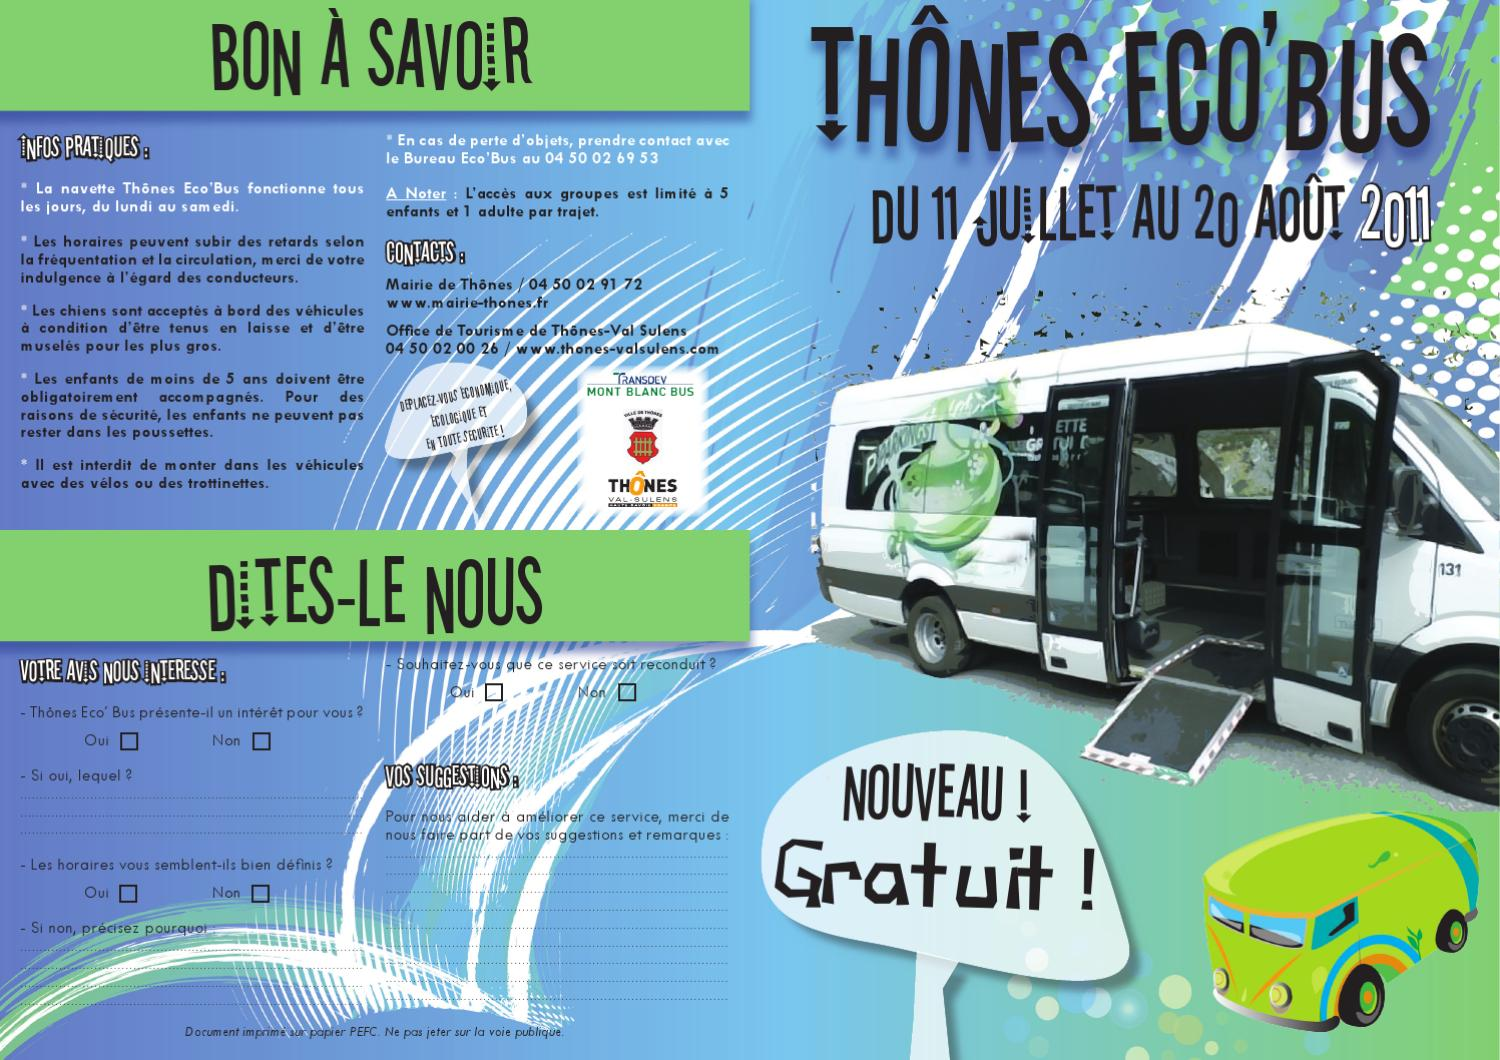 Th nes eco 39 bus by office de tourisme de th nes val sulens emilie issuu - Office de tourisme de thones ...